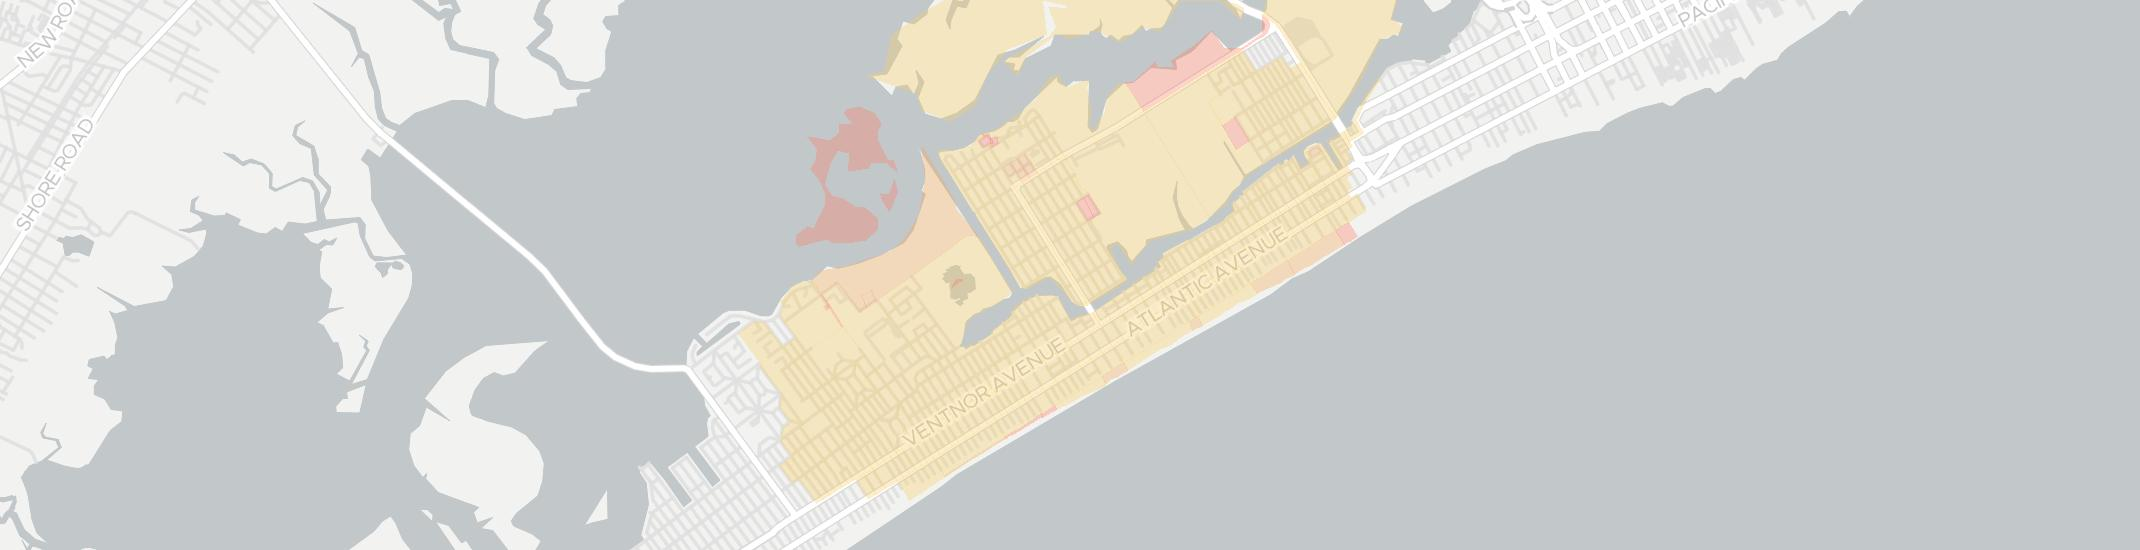 Ventnor City Internet Competition Map. Click for interactive map.